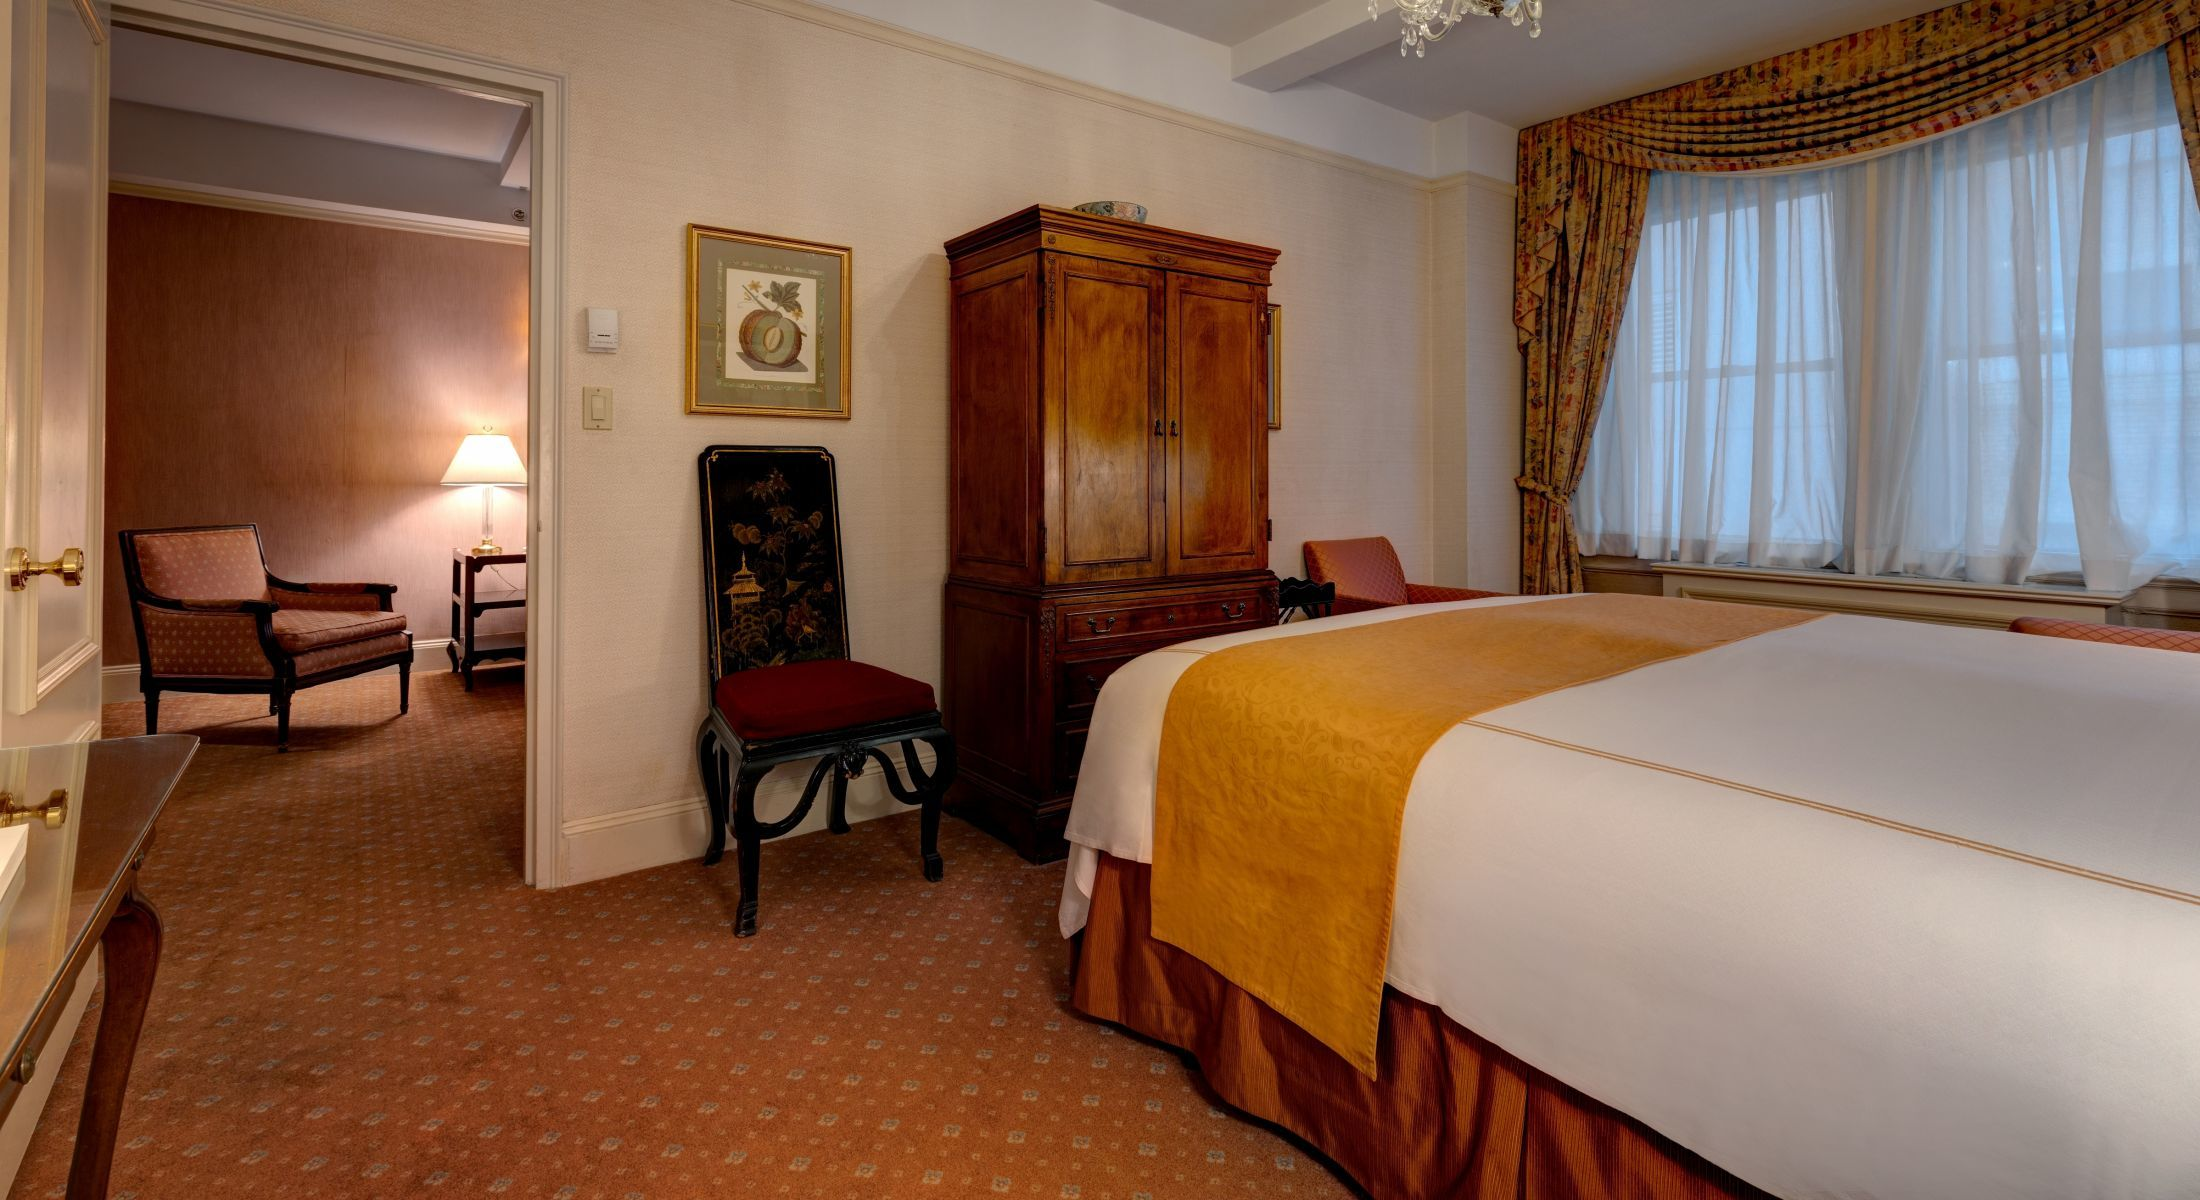 Bedroom of the King Suite at the Hotel Elysee with king bed and armoire.